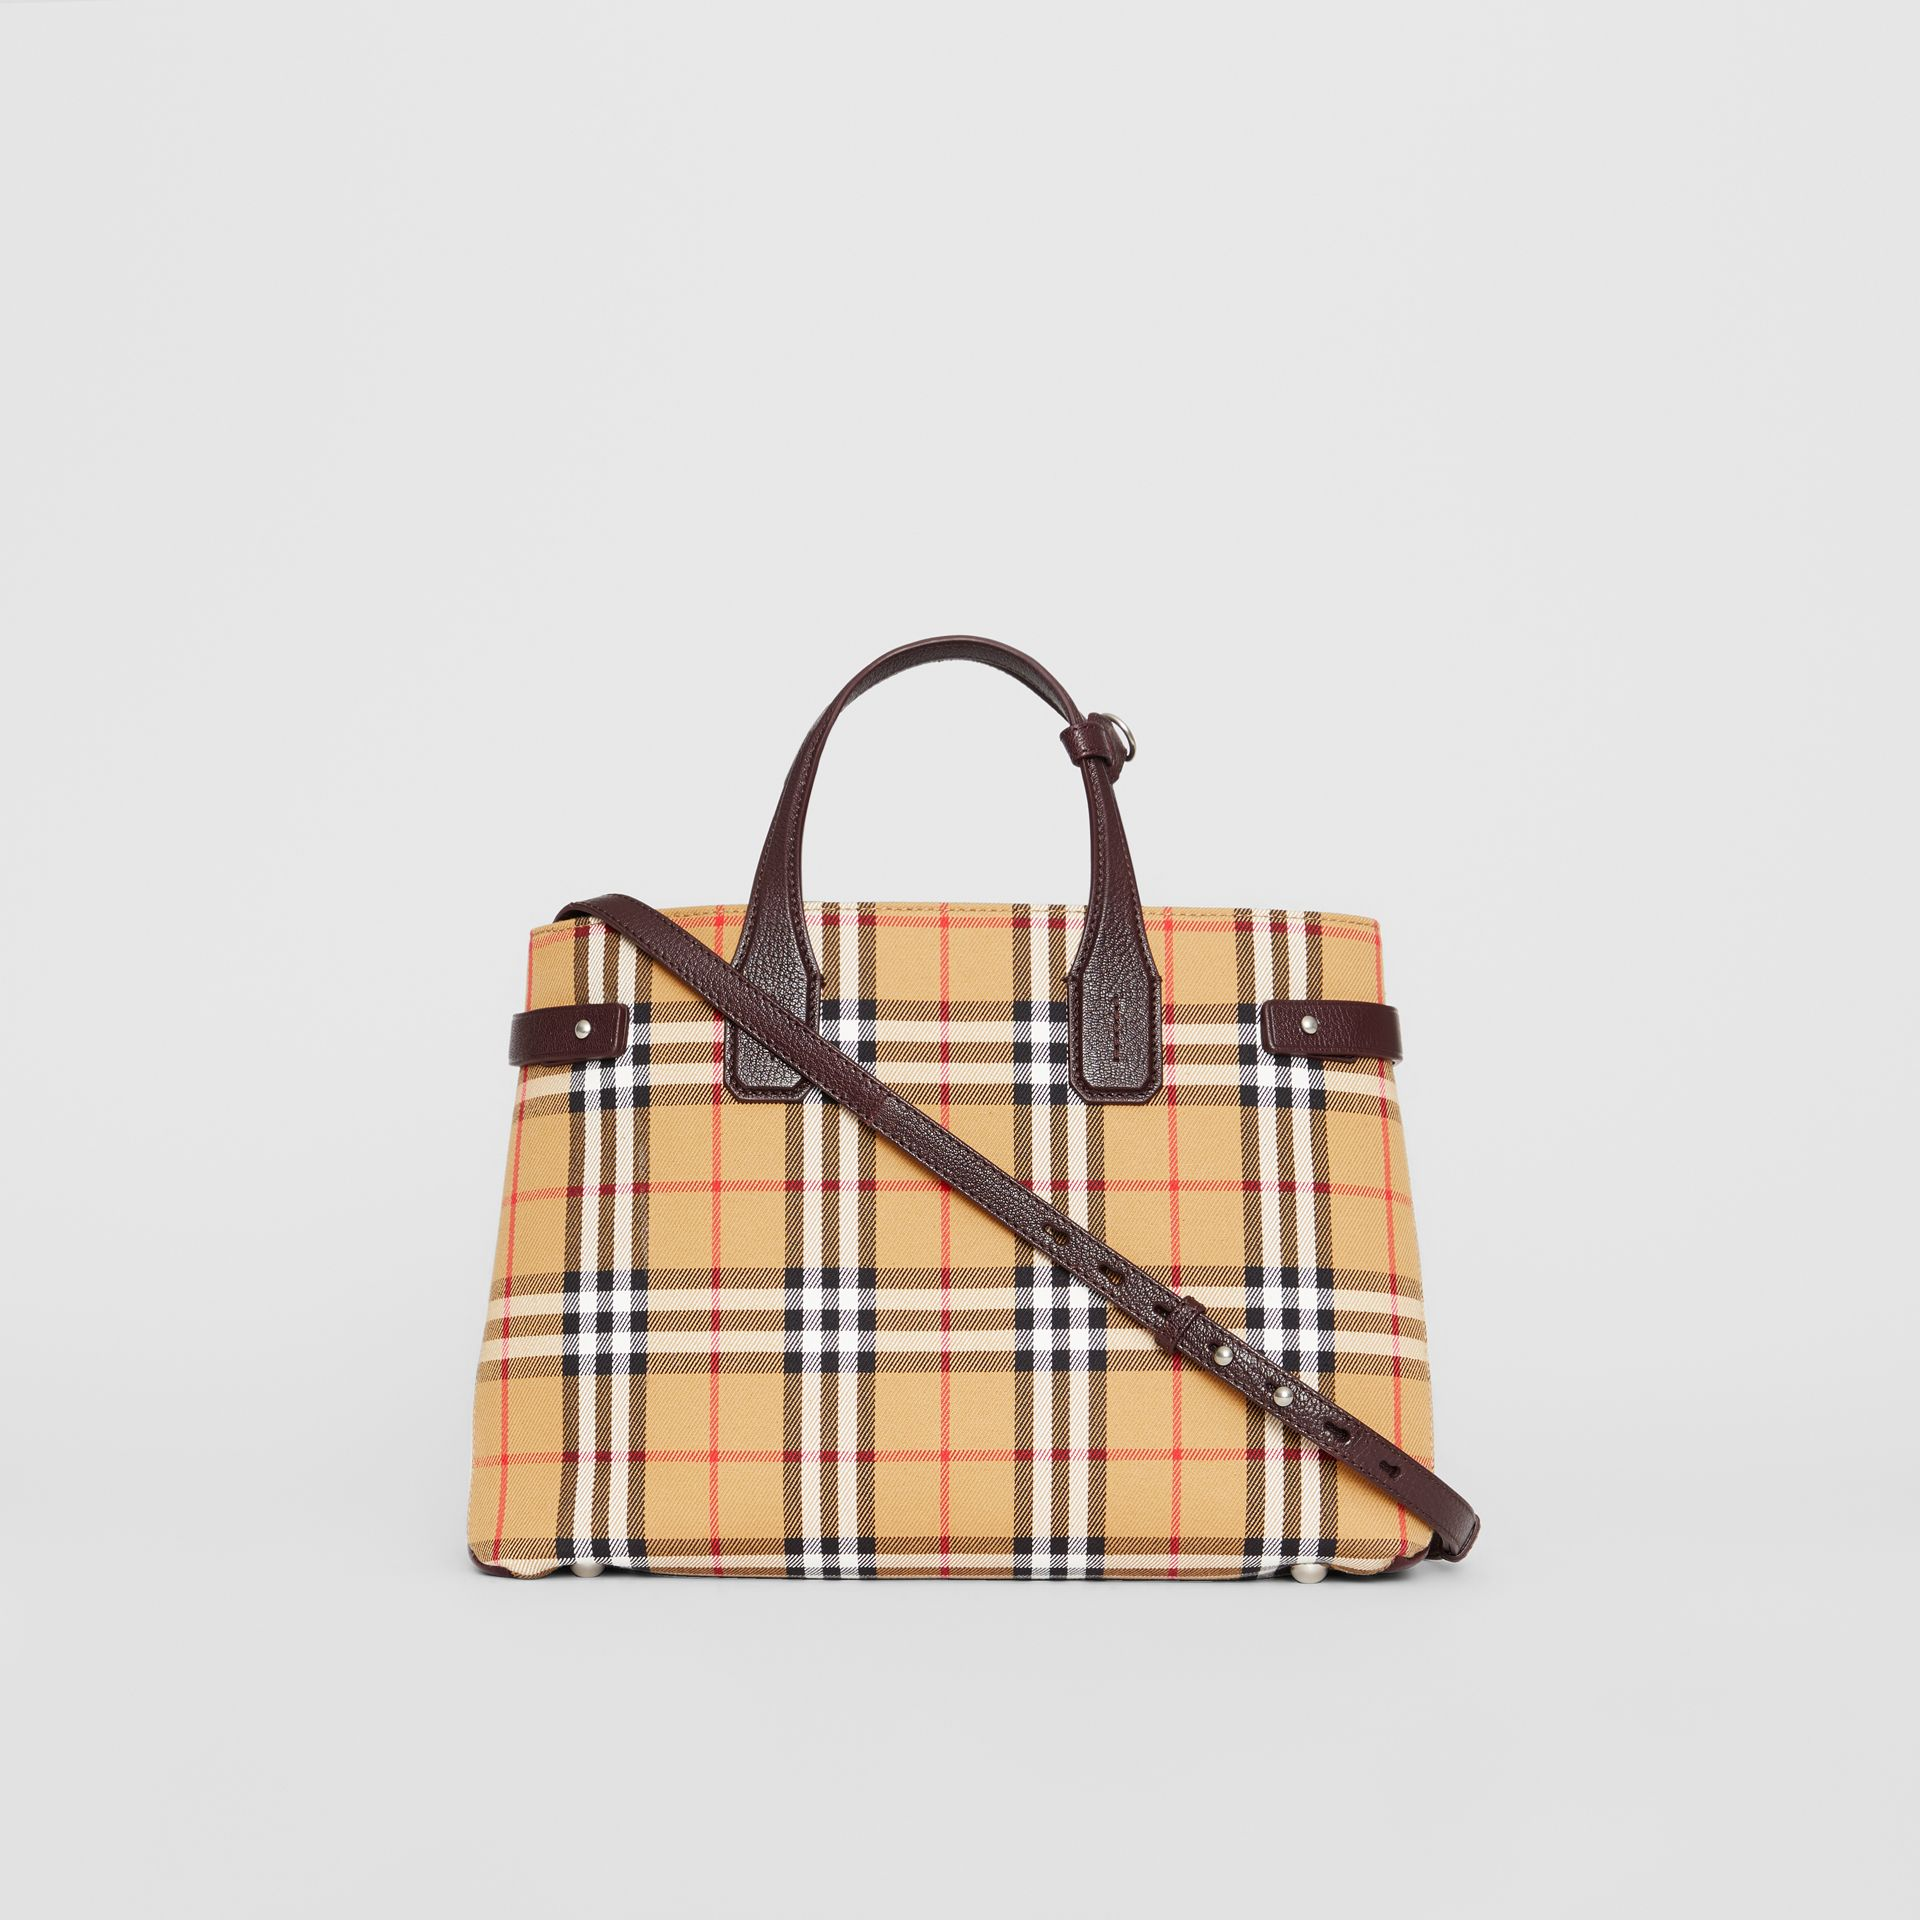 Sac The Banner moyen en cuir et Vintage check (Bordeaux Intense) - Femme | Burberry - photo de la galerie 7